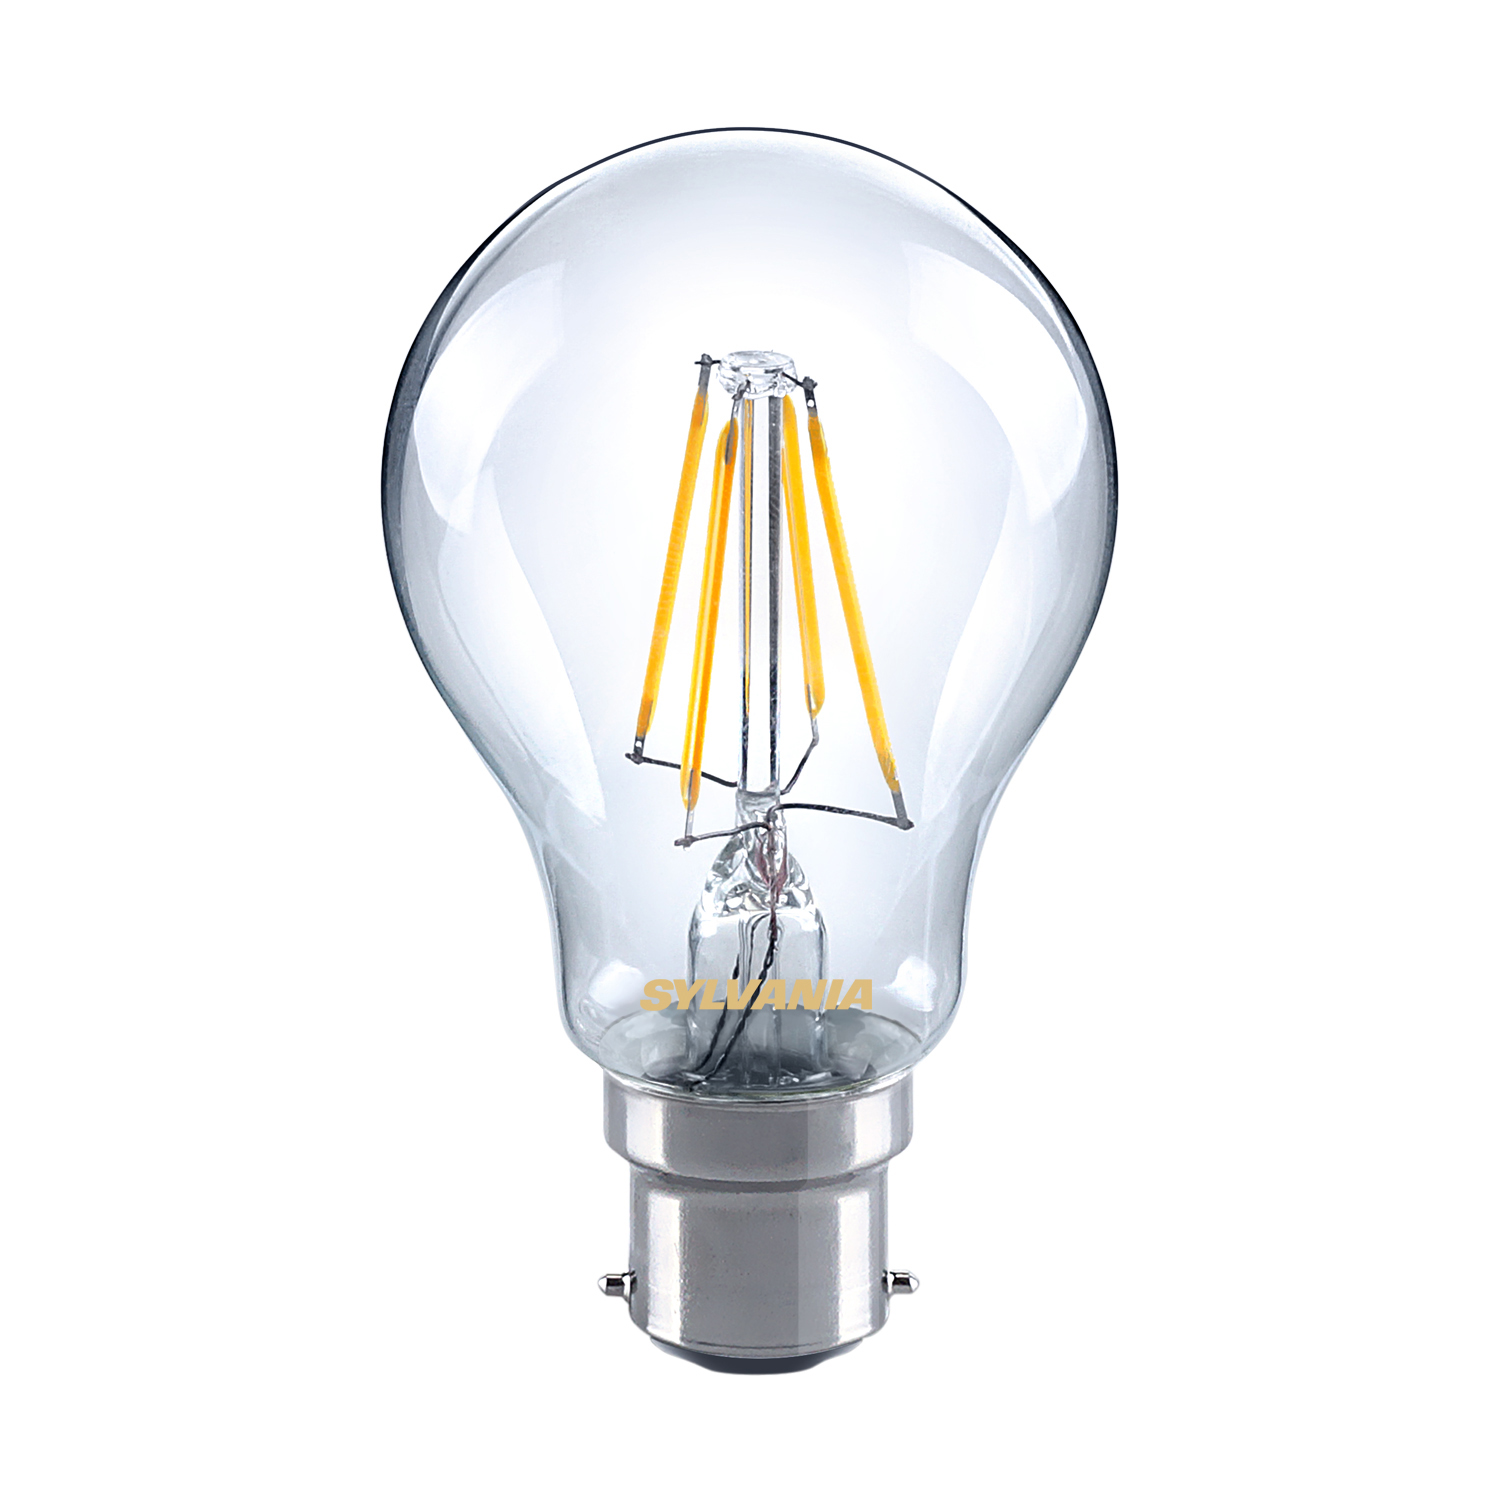 sylvania 5w led gls traditional light bulb b22 bc warm white 2700k non dimmable liminaires